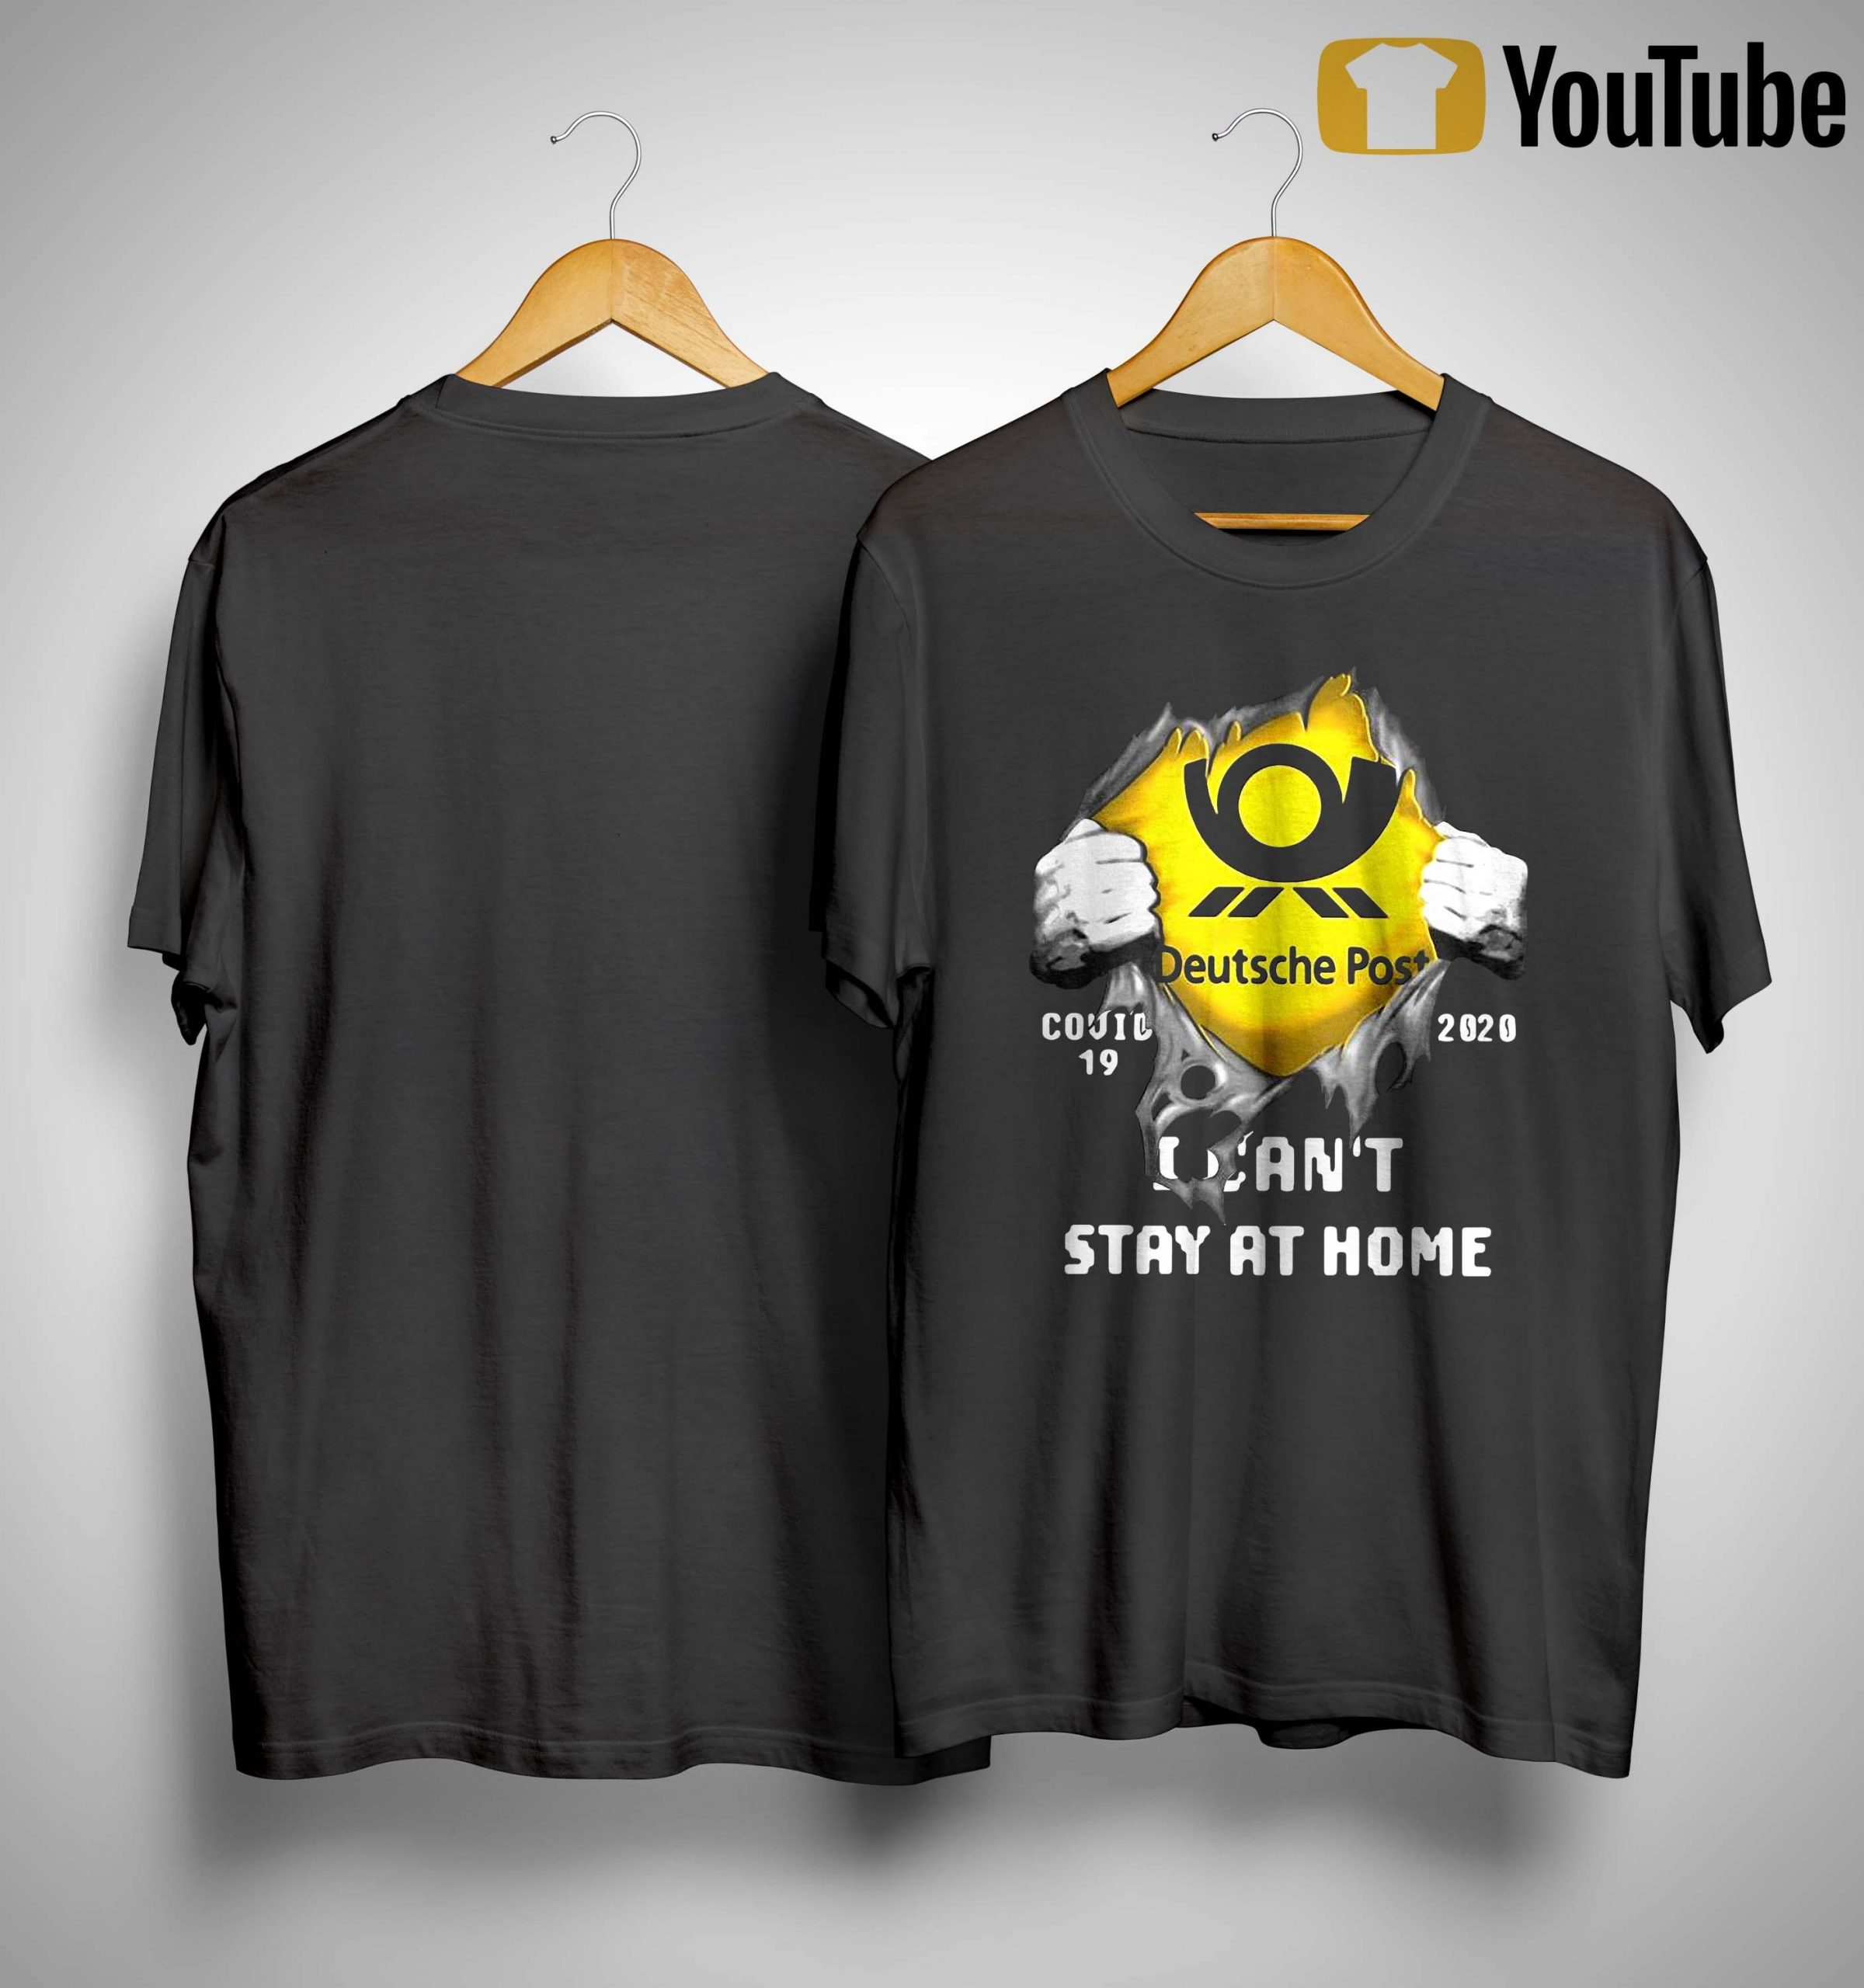 Deutsche Post Covid 19 2020 I Can't Stay At Home Shirt